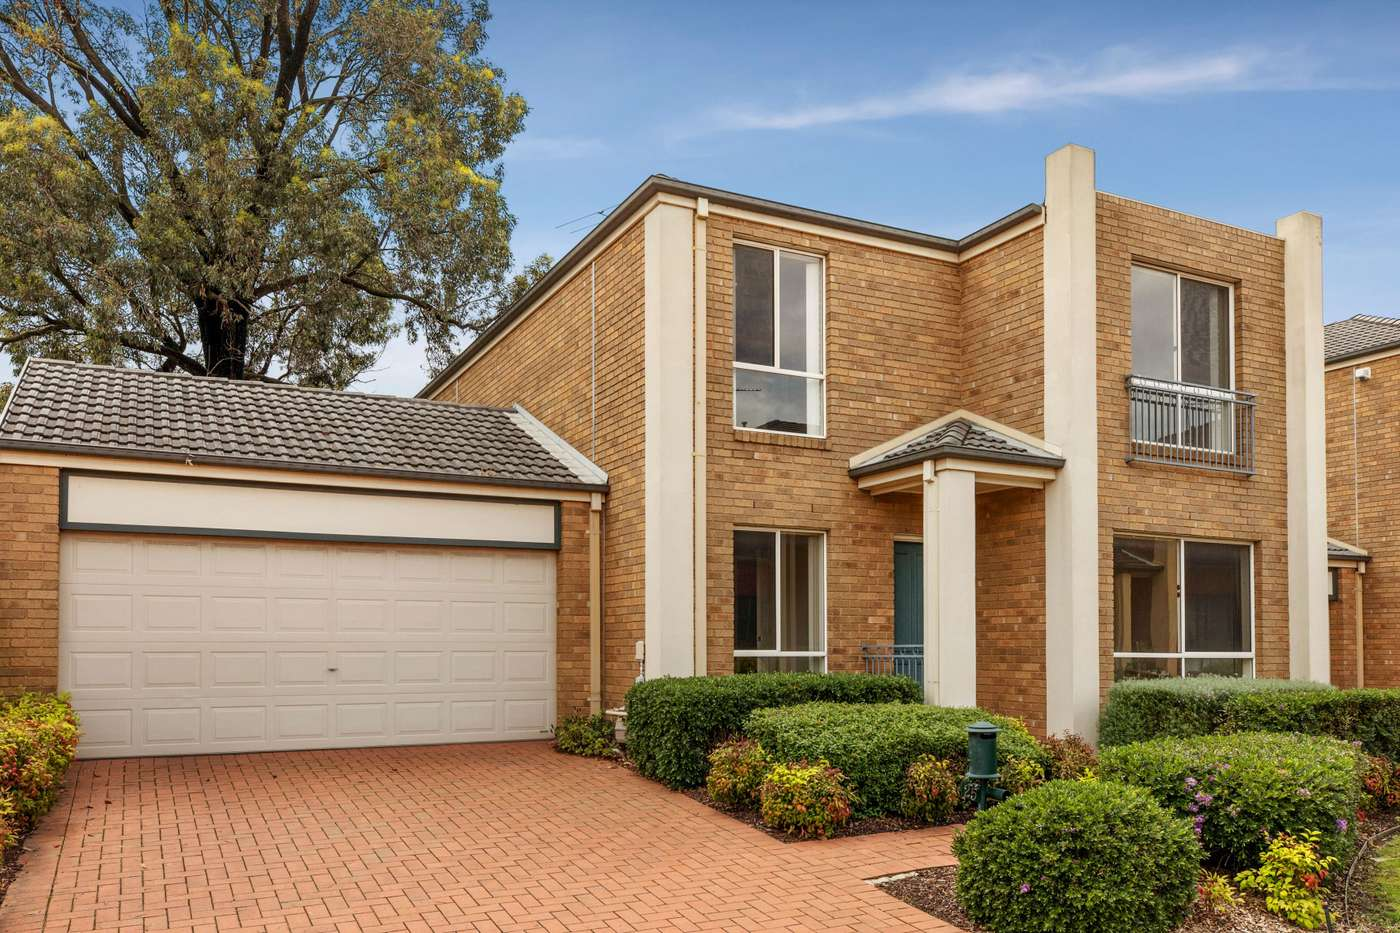 Main view of Homely house listing, 25 Larkspur Circuit, Glen Waverley, VIC 3150